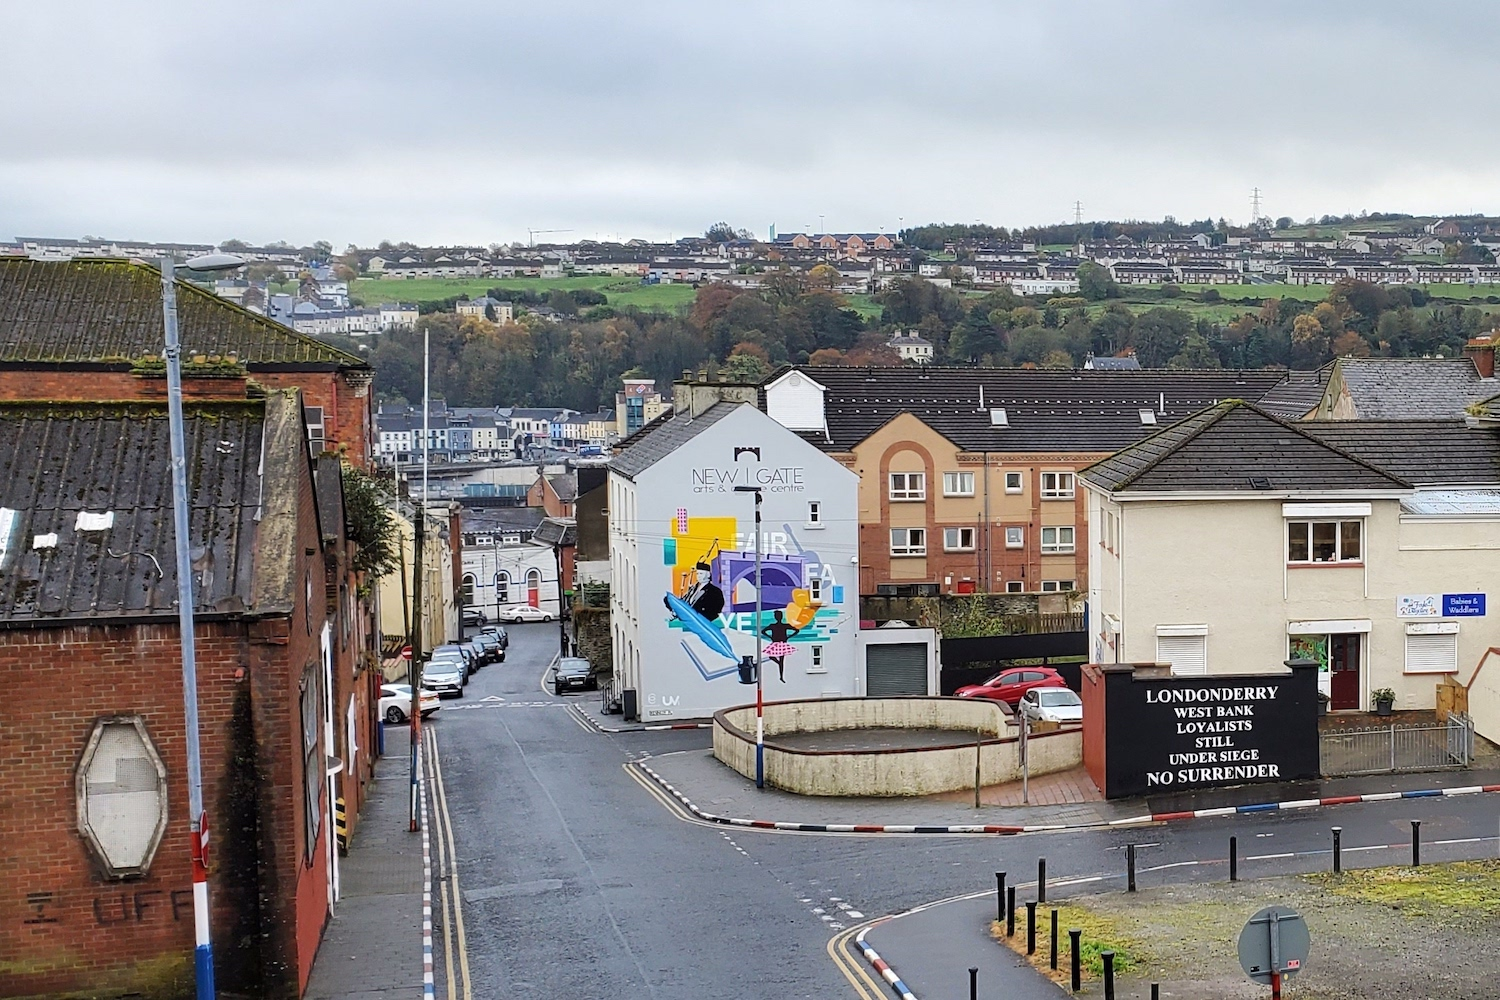 """Street intersection in Derry Ireland. A sign reads """"Londonderry West Bank Loyalists still under siege. No surrender."""""""